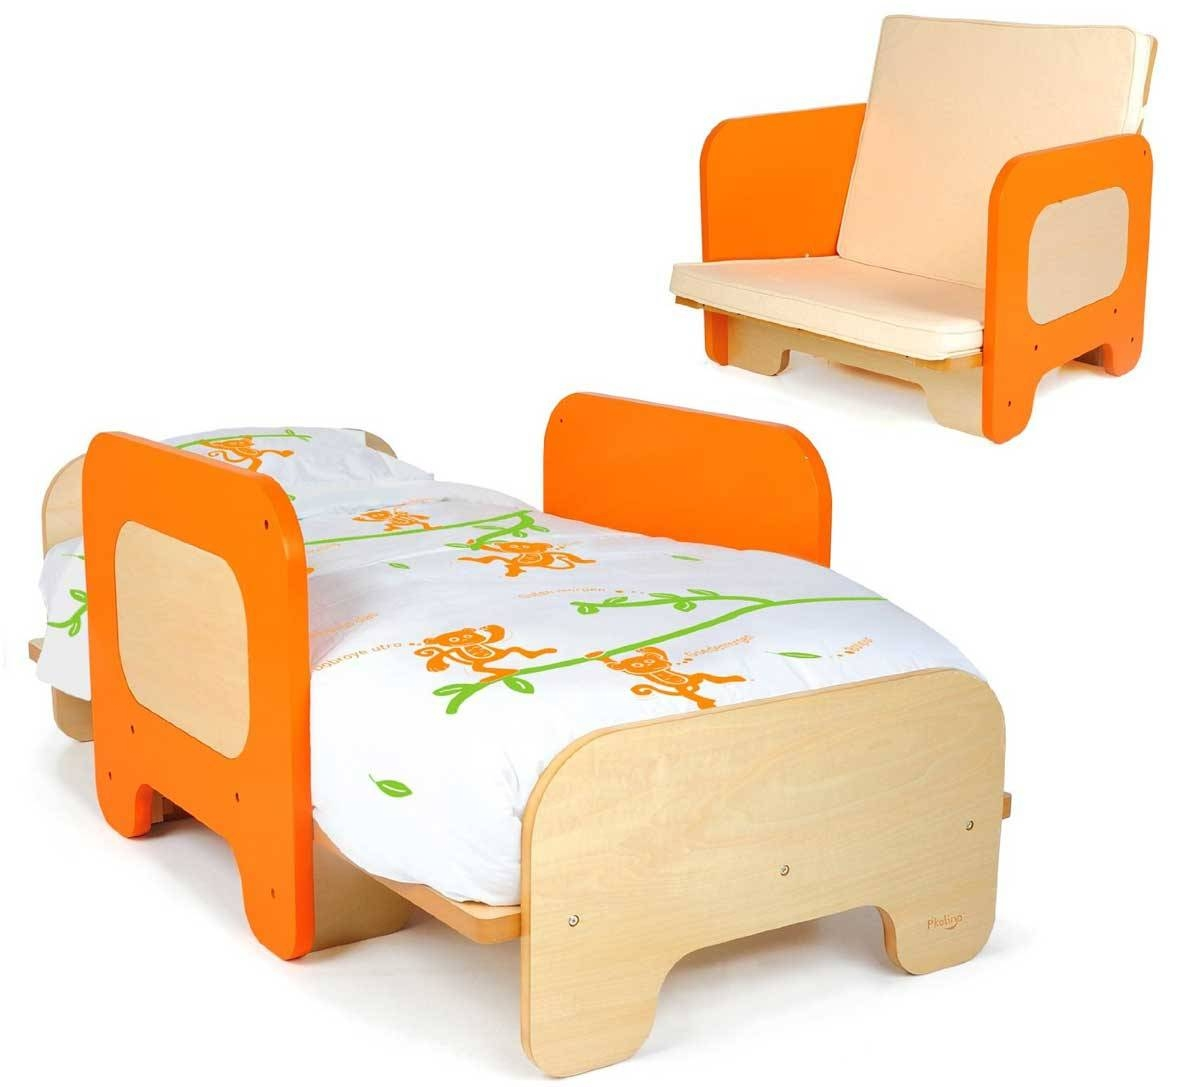 Interior Design Darcy Kids Sofa Bed Youtube In Childs Couch Kids in Toddler Sofa Chairs (Image 7 of 15)